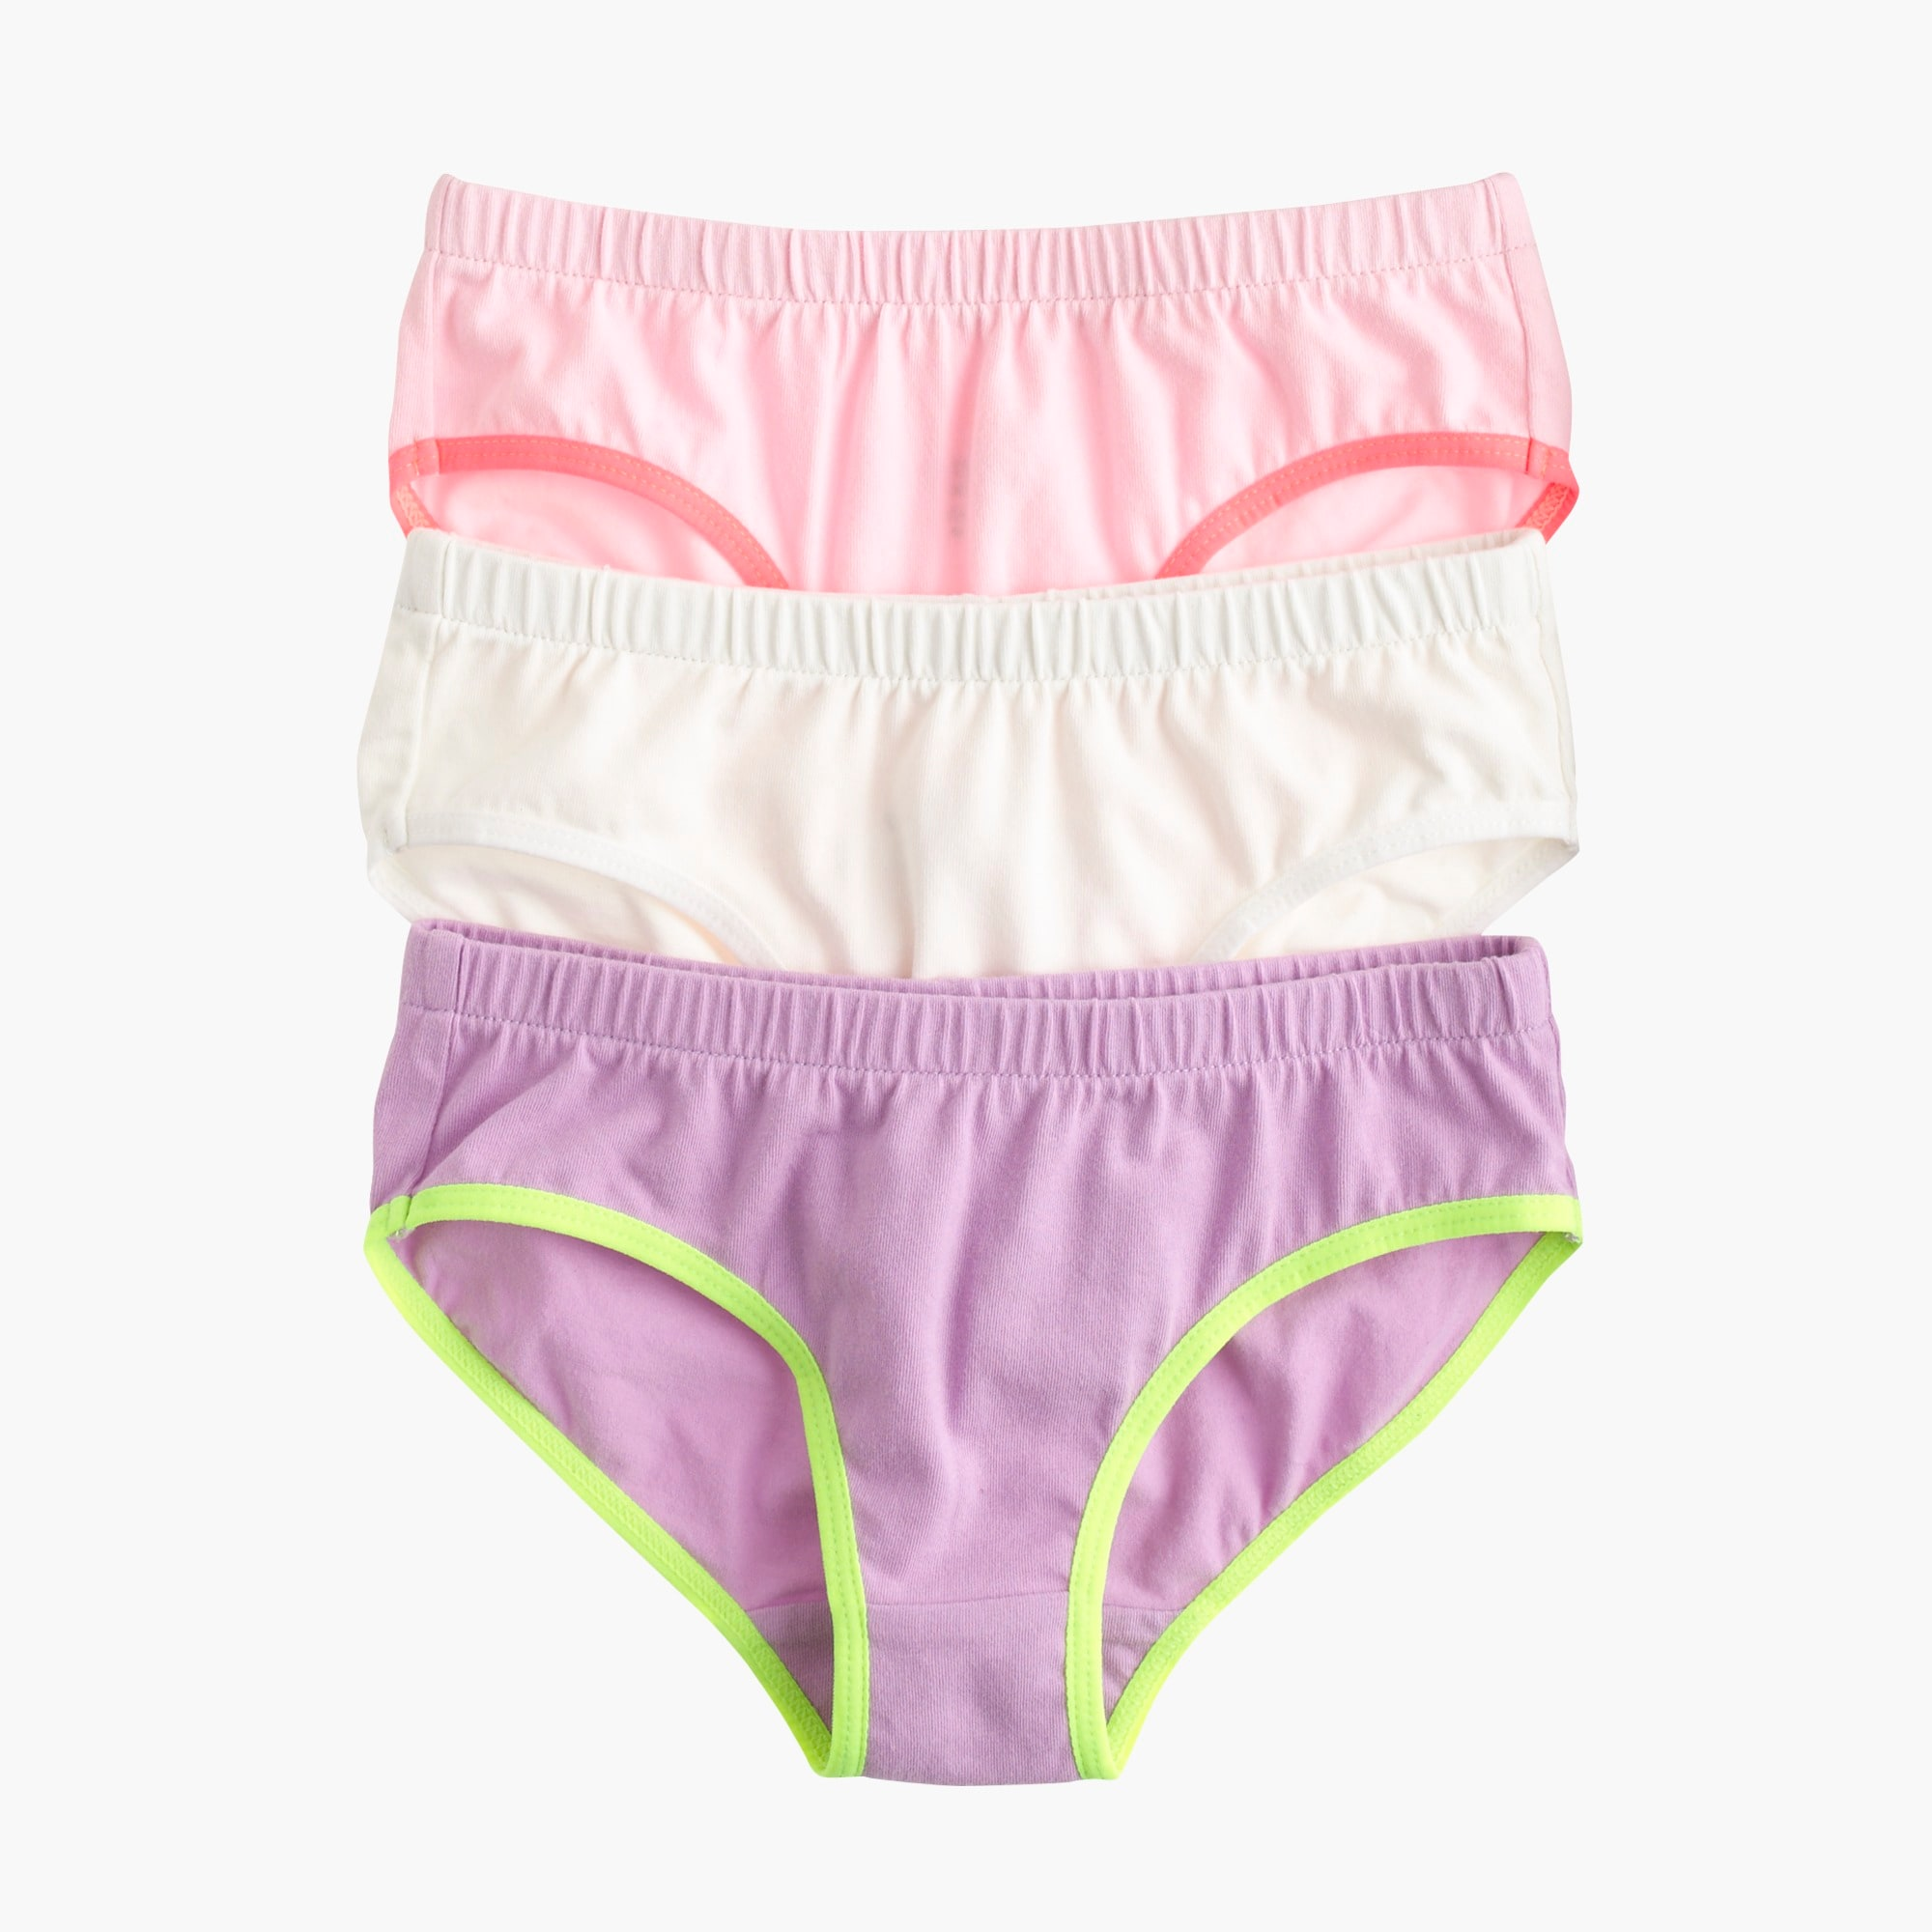 Image 1 for Girls' underwear three-pack in solid